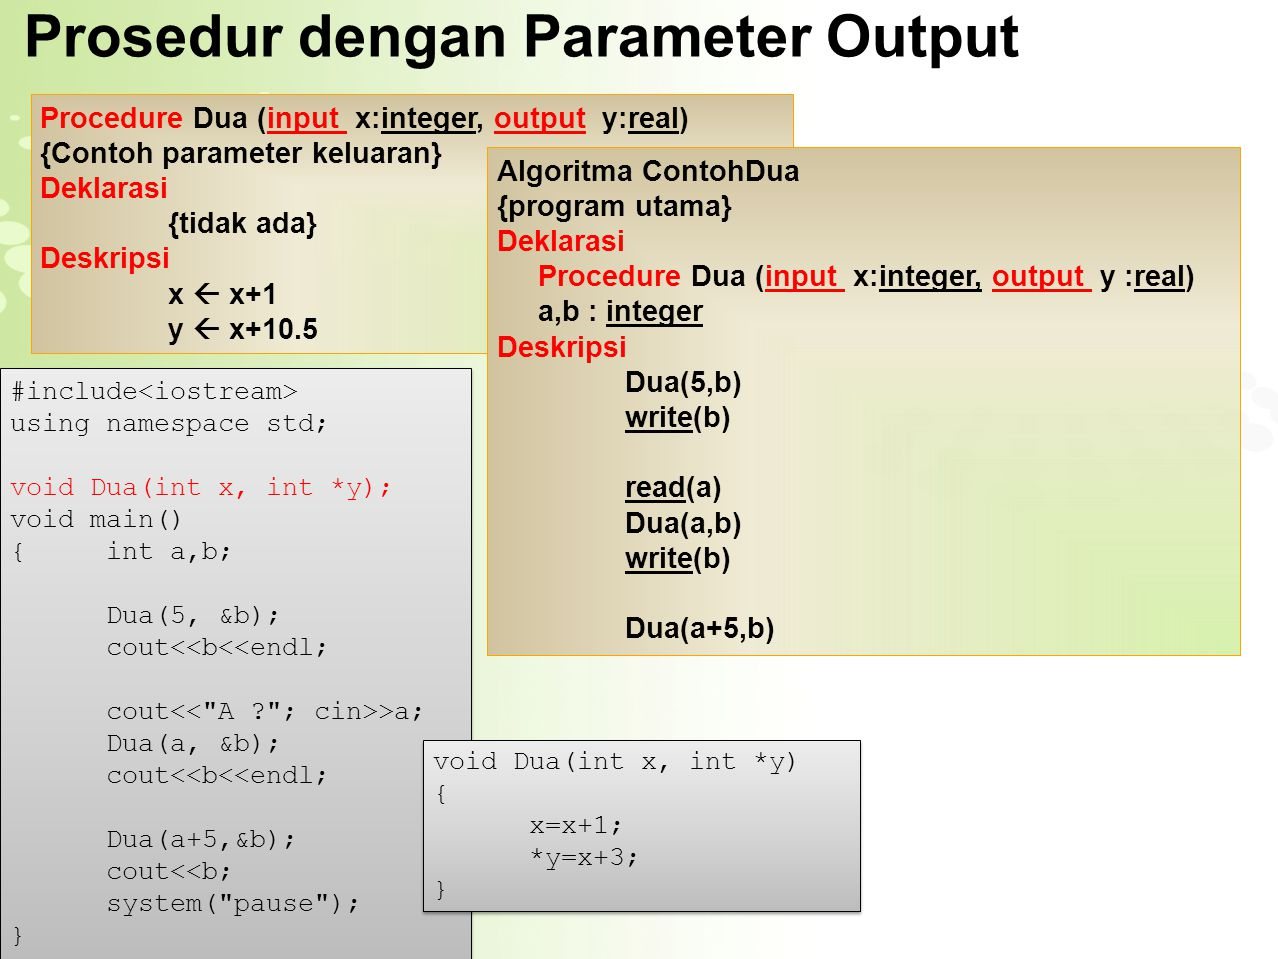 Page  13 Prosedur dengan Parameter Output Procedure Dua (input x:integer, output y:real) {Contoh parameter keluaran} Deklarasi {tidak ada} Deskripsi x  x+1 y  x+10.5 Algoritma ContohDua {program utama} Deklarasi Procedure Dua (input x:integer, output y :real) a,b : integer Deskripsi Dua(5,b) write(b) read(a) Dua(a,b) write(b) Dua(a+5,b) #include using namespace std; void Dua(int x, int *y); void main() {int a,b; Dua(5, &b); cout<<b<<endl; cout >a; Dua(a, &b); cout<<b<<endl; Dua(a+5,&b); cout<<b; system( pause ); } #include using namespace std; void Dua(int x, int *y); void main() {int a,b; Dua(5, &b); cout<<b<<endl; cout >a; Dua(a, &b); cout<<b<<endl; Dua(a+5,&b); cout<<b; system( pause ); } void Dua(int x, int *y) { x=x+1; *y=x+3; } void Dua(int x, int *y) { x=x+1; *y=x+3; }